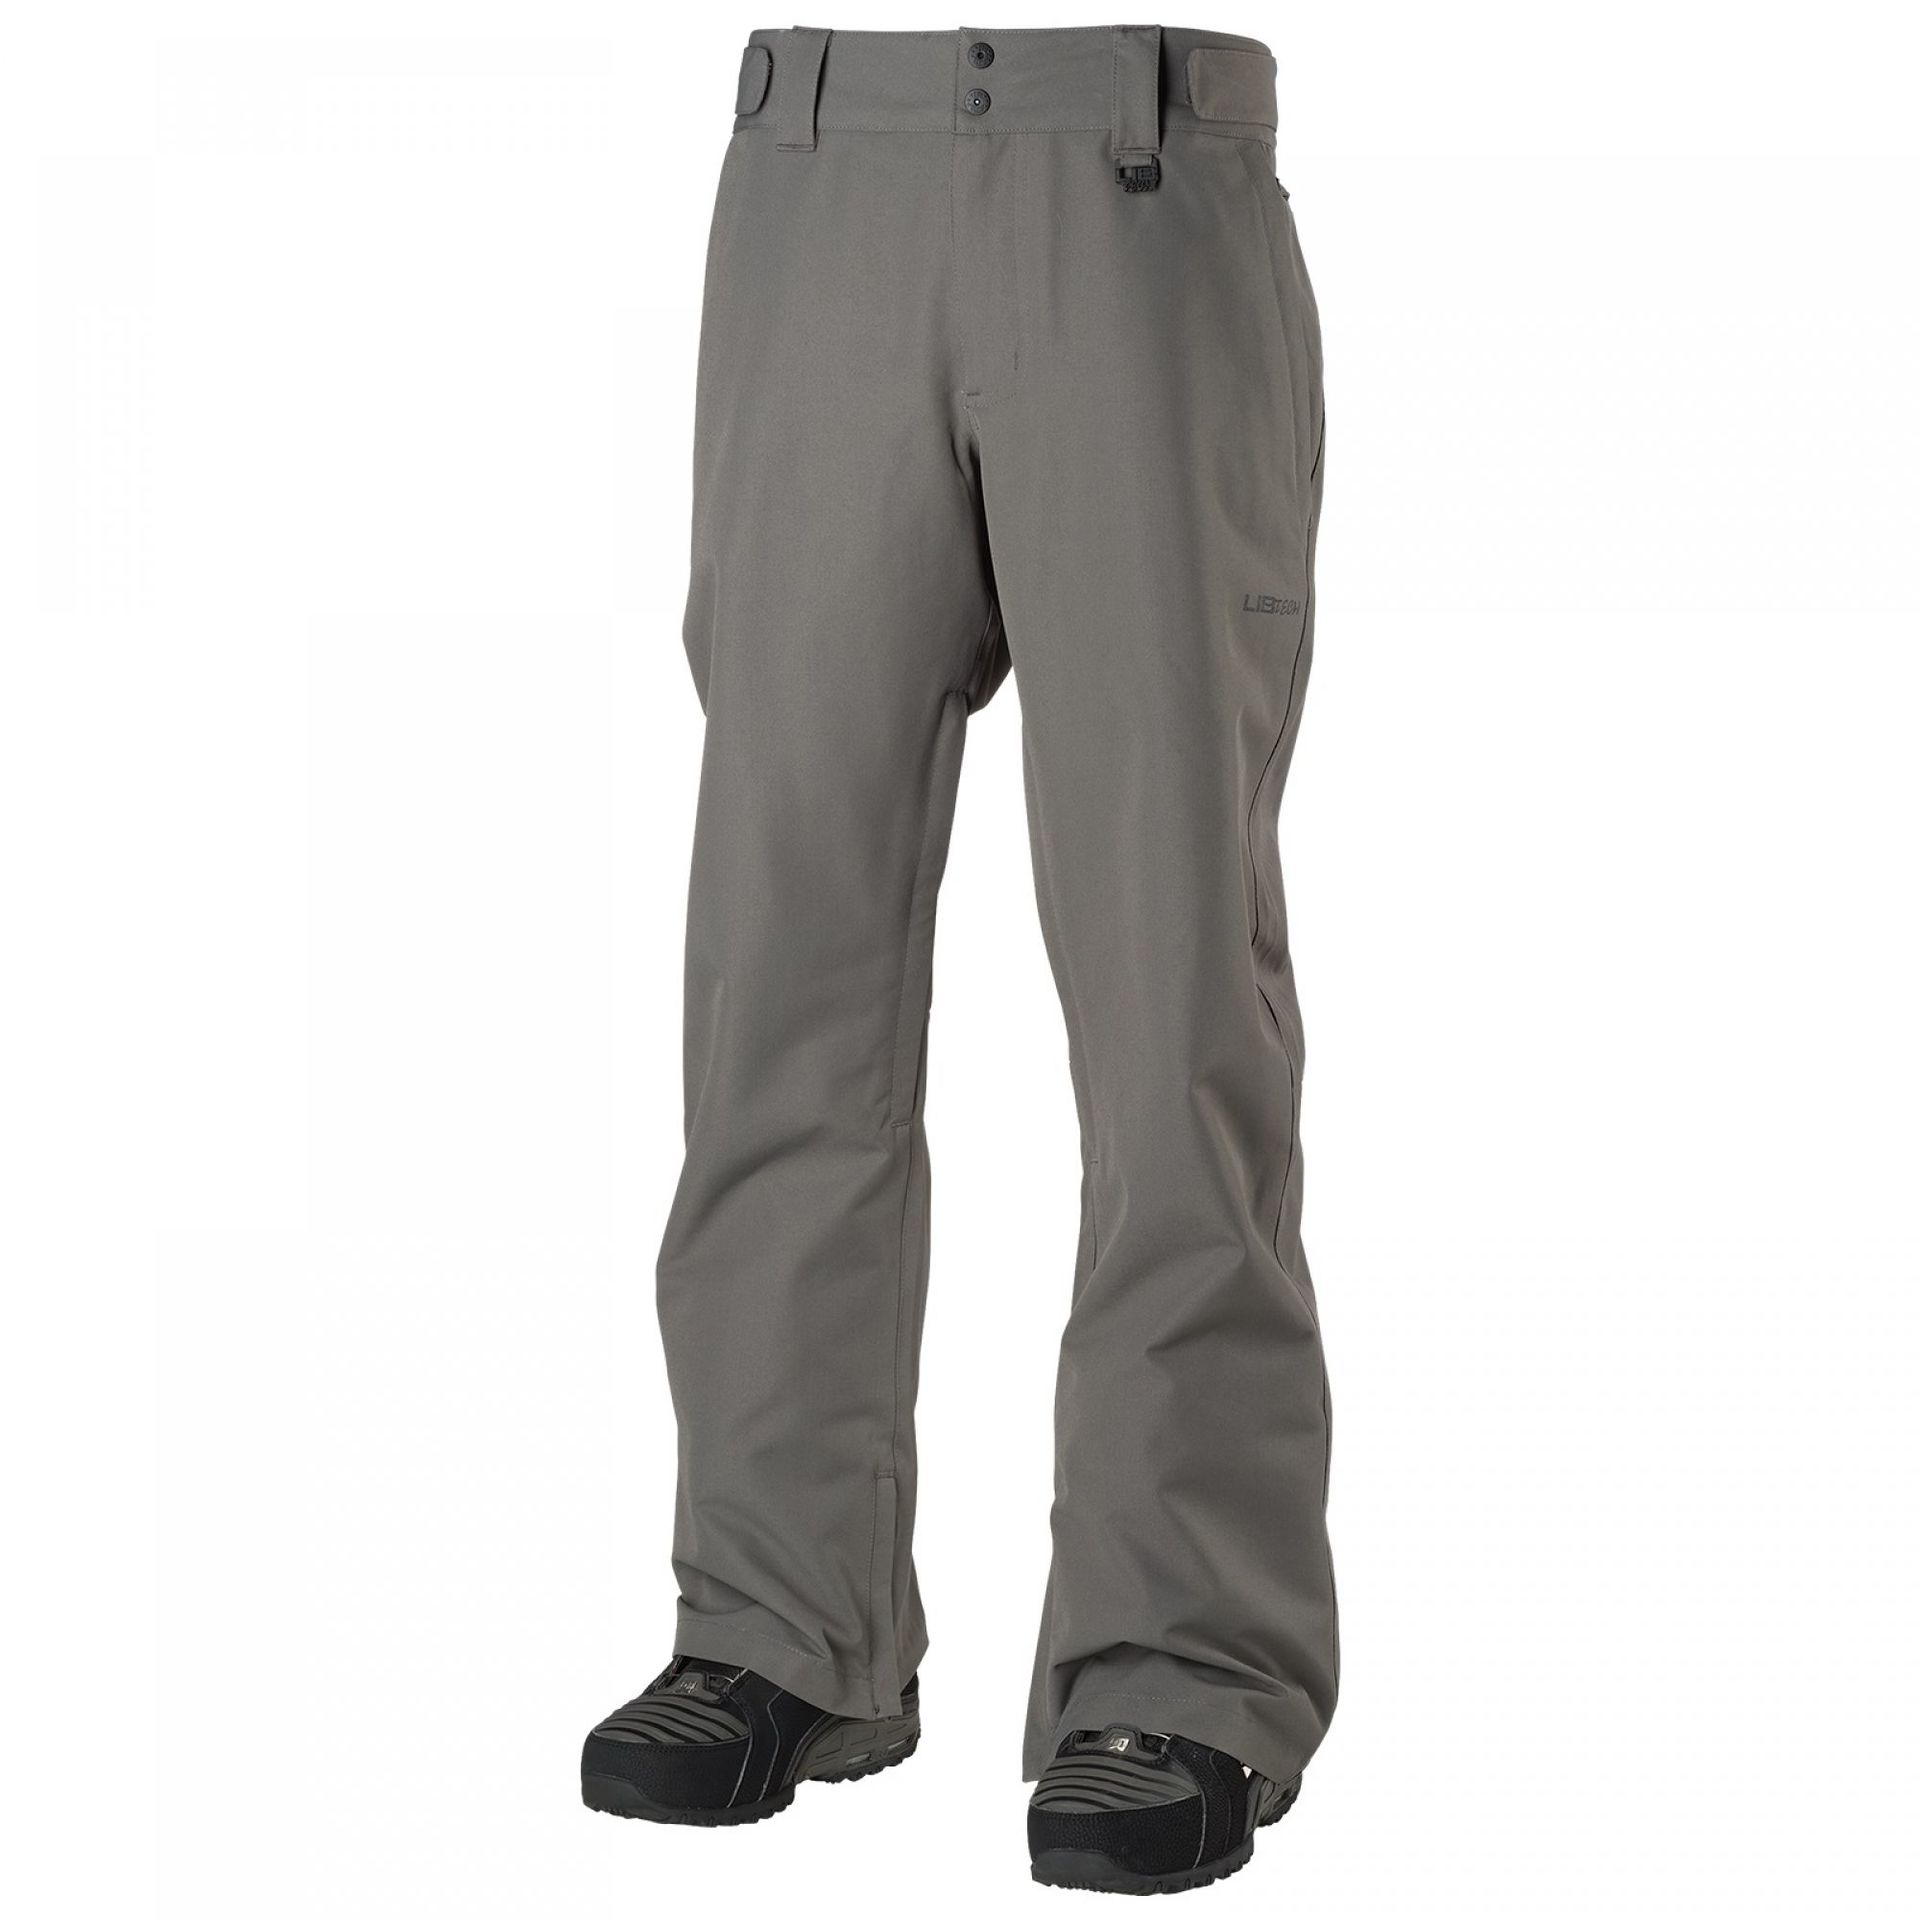 SPODNIE  LIB TECH THROWDOWN PANT